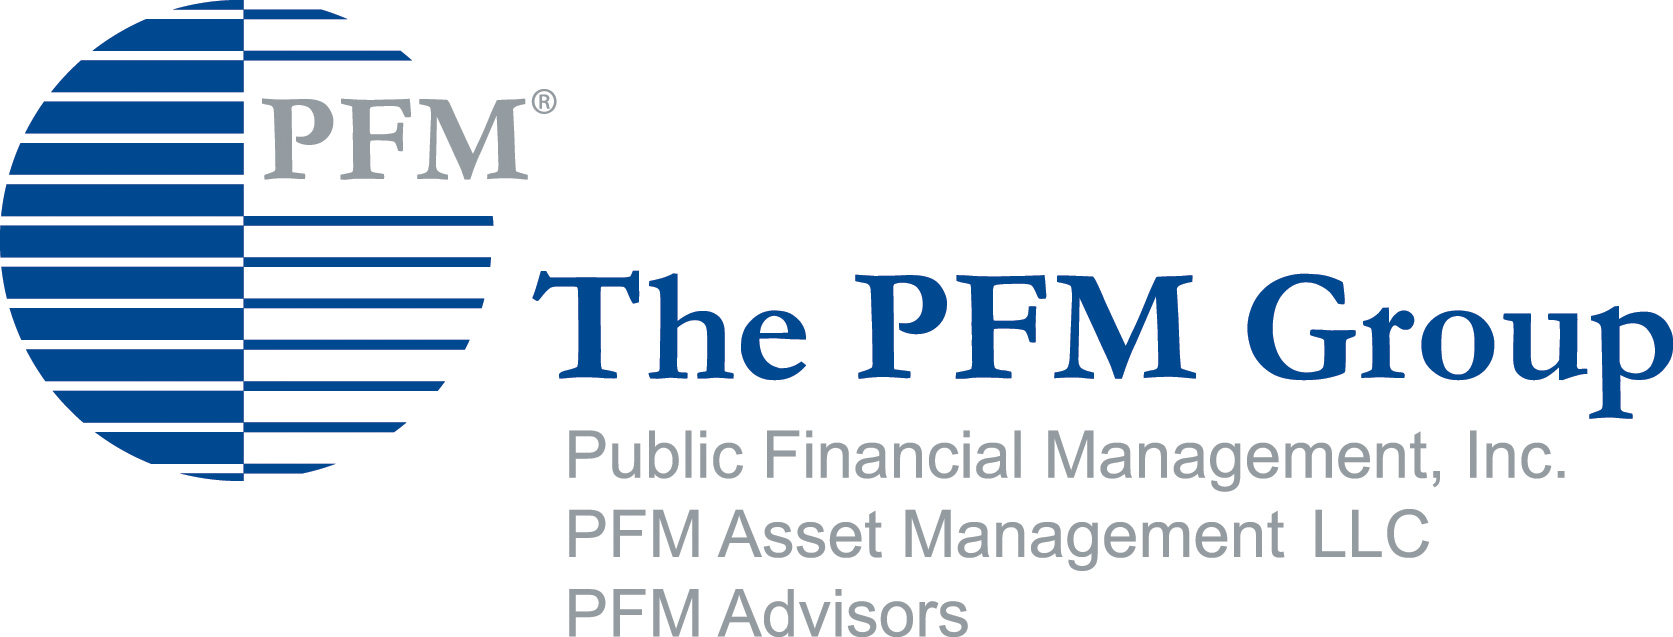 The PFM Group Logo